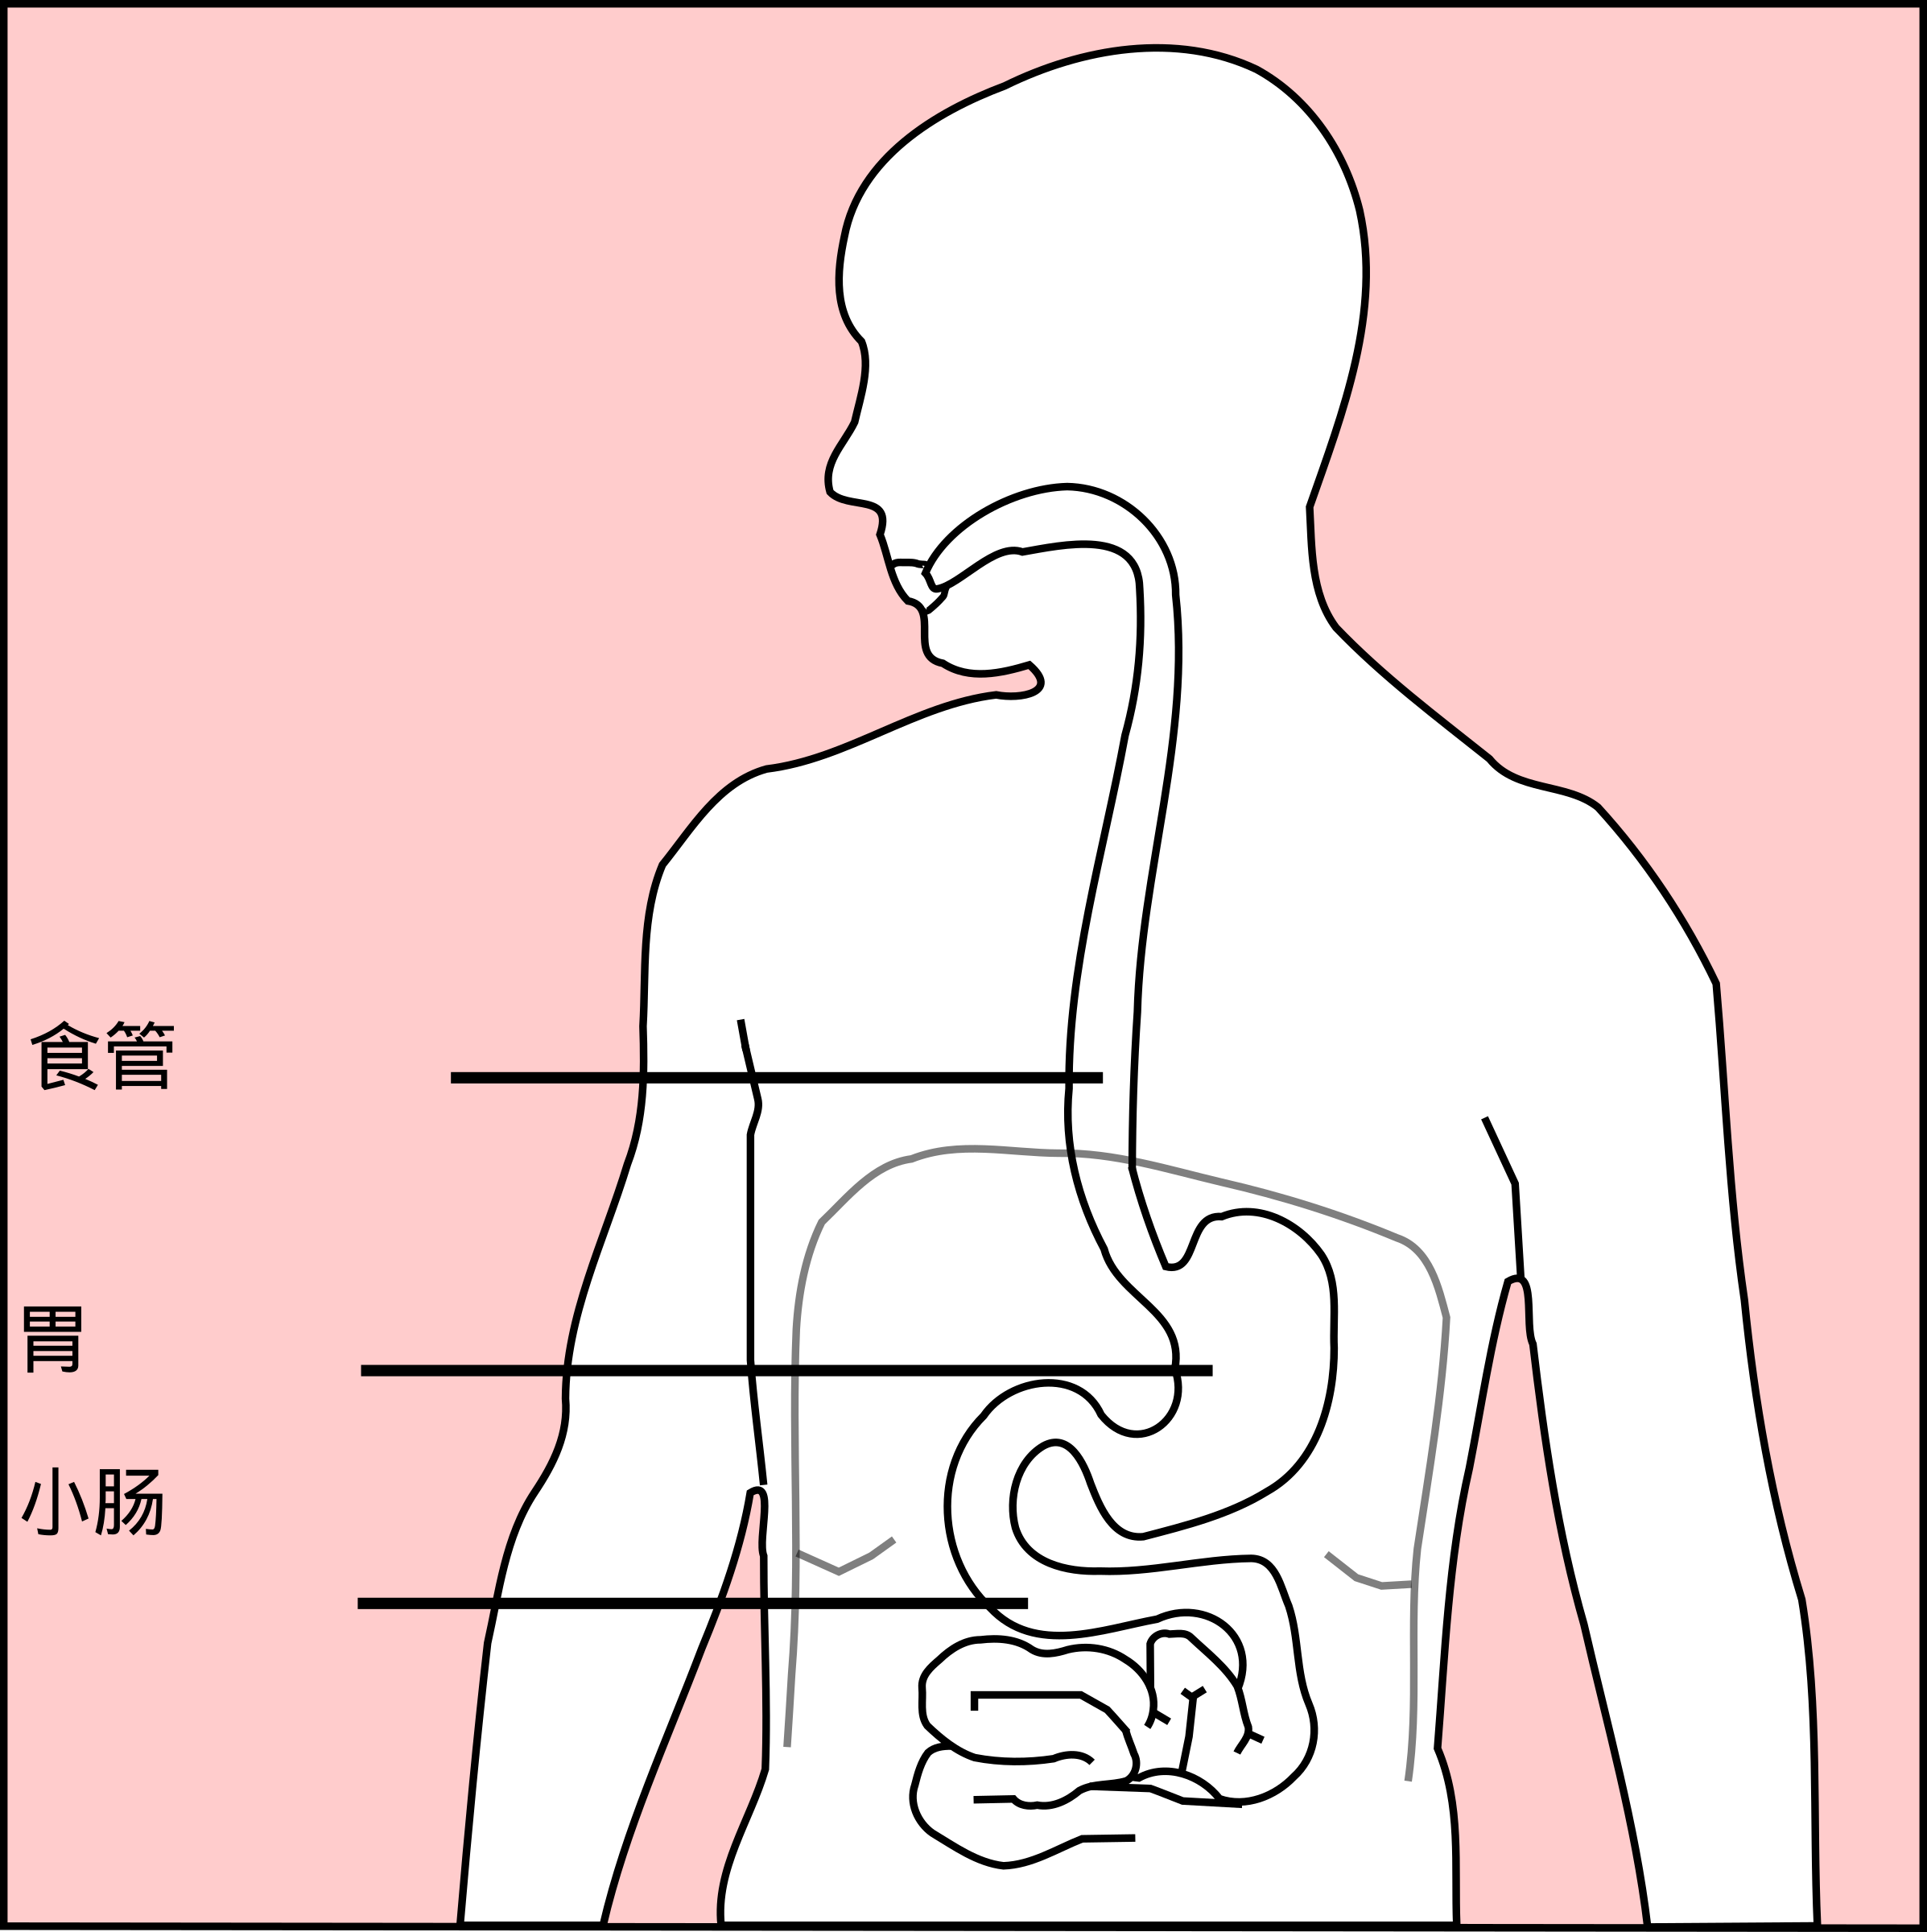 Stomach With Chinese by chudq